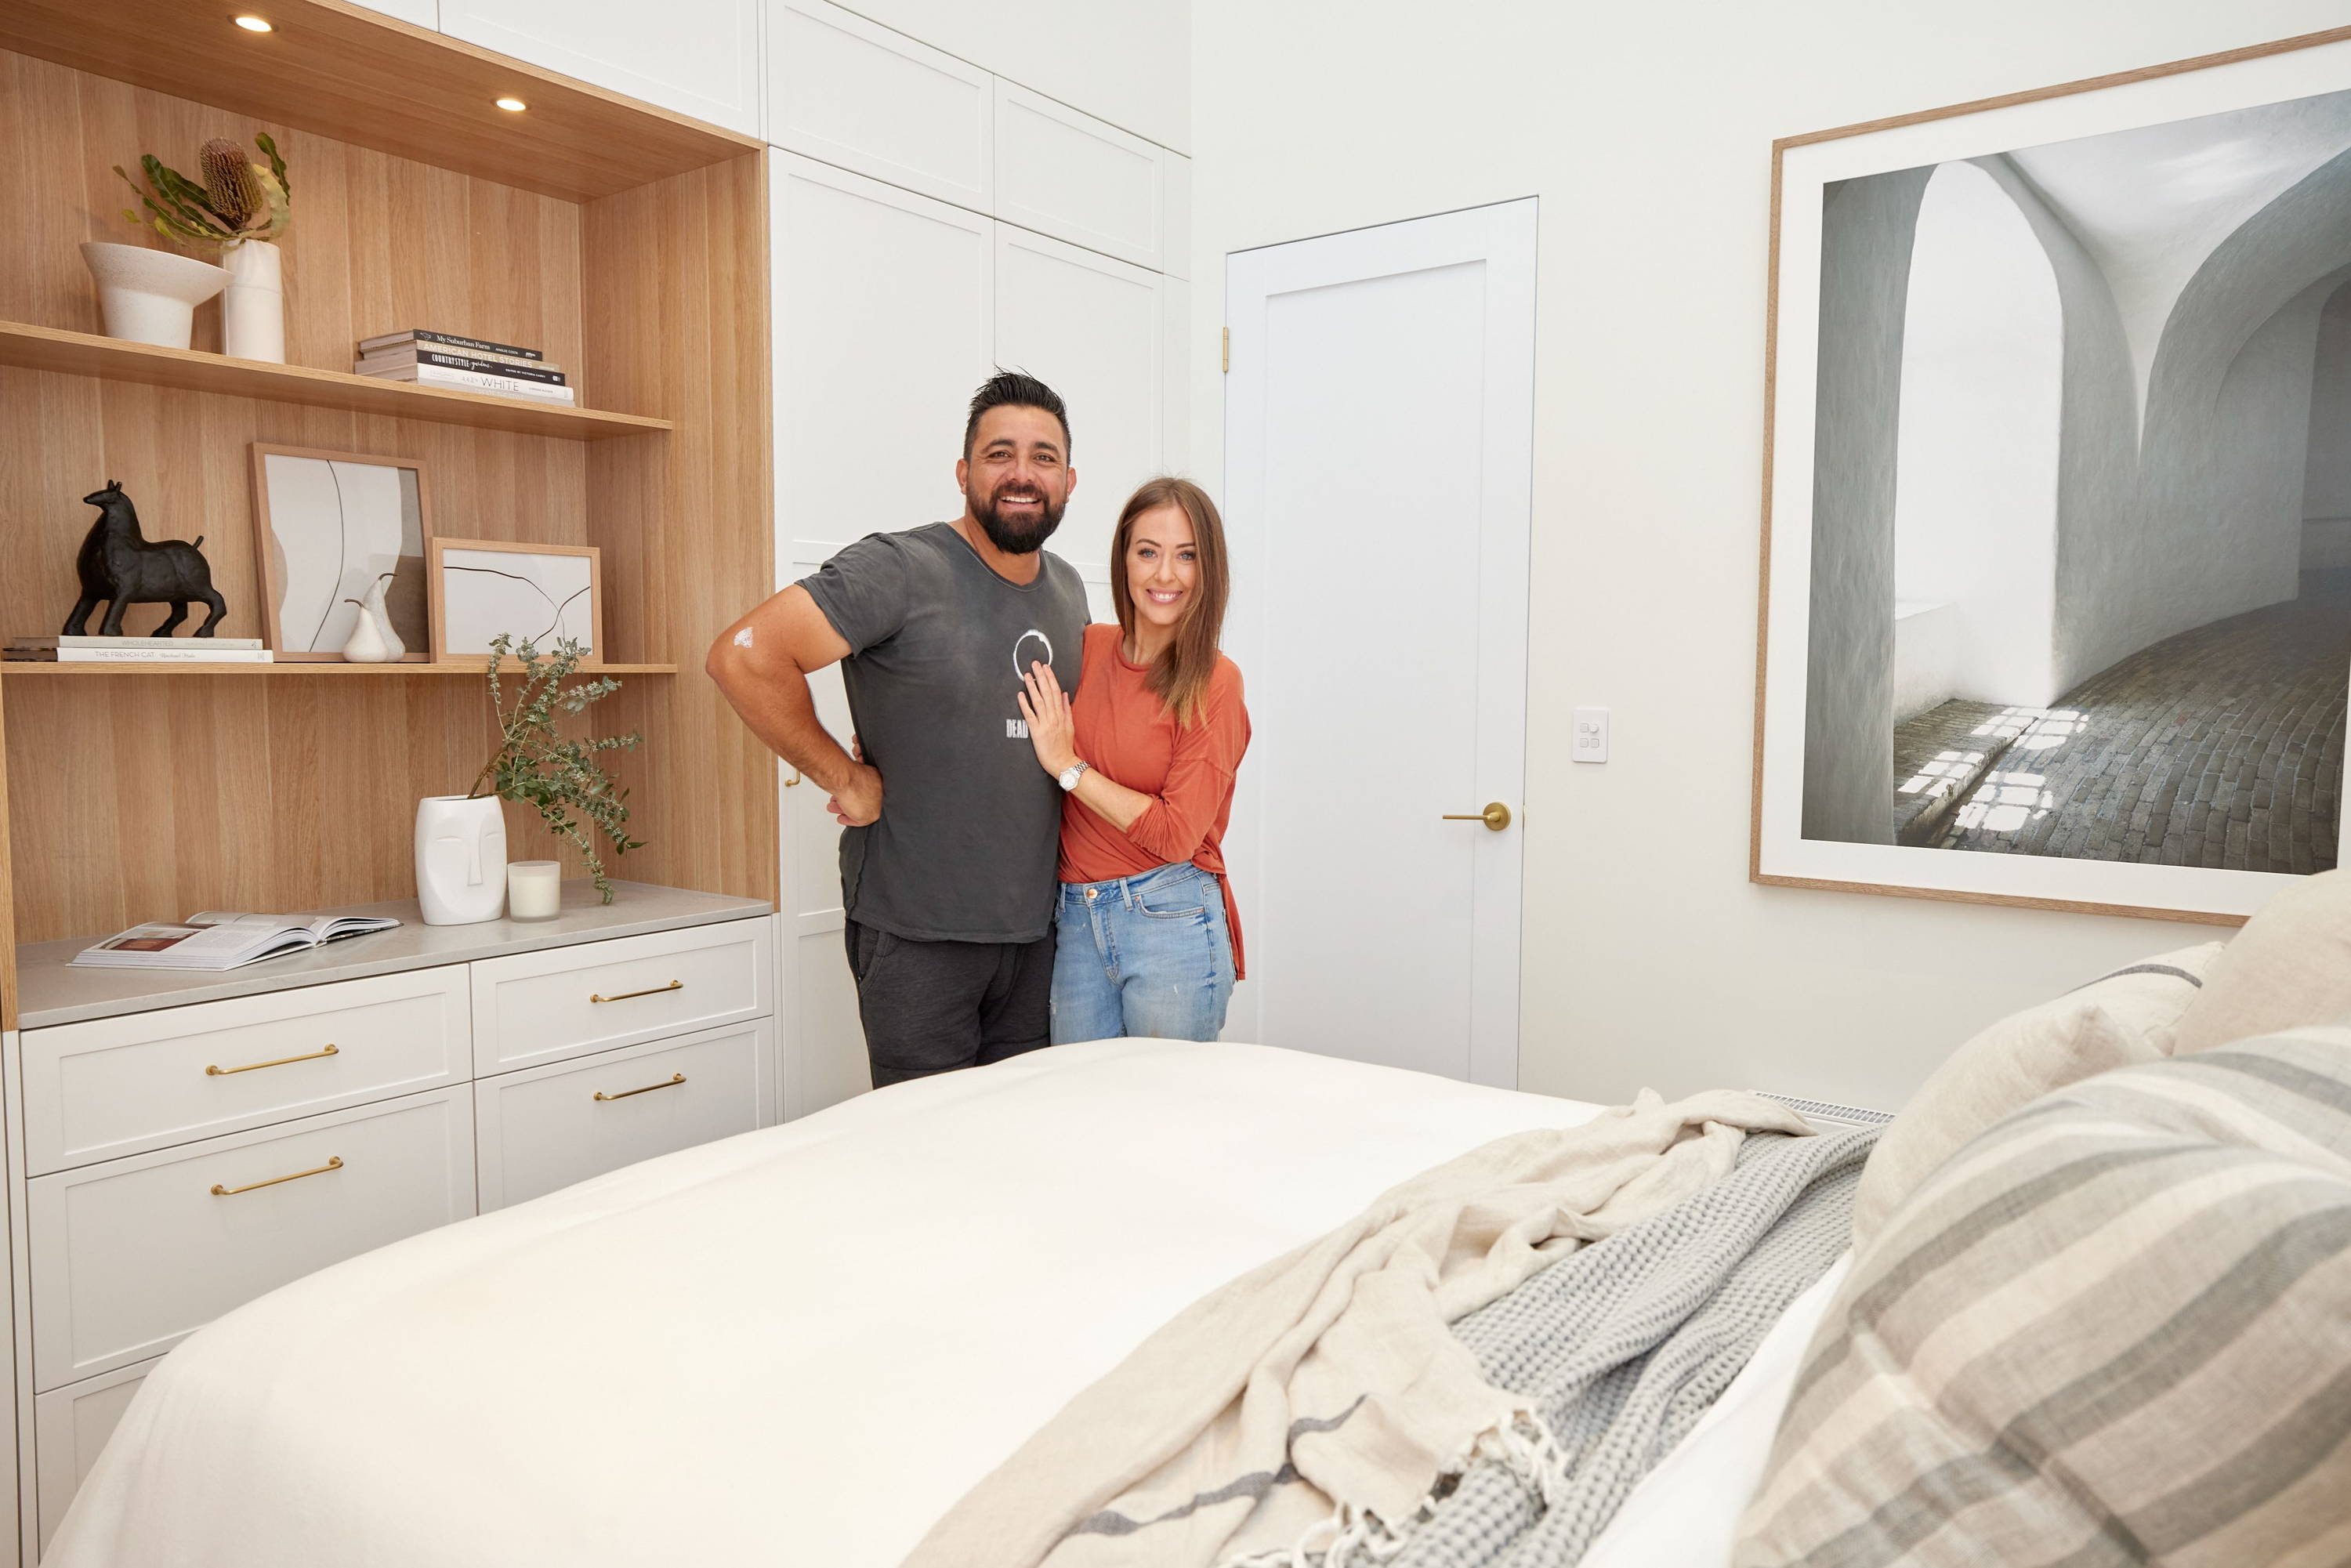 Ronnie and Georgia on The Block in their Guest Bedroom - A neutral bedroom interior with the two contestants in situ